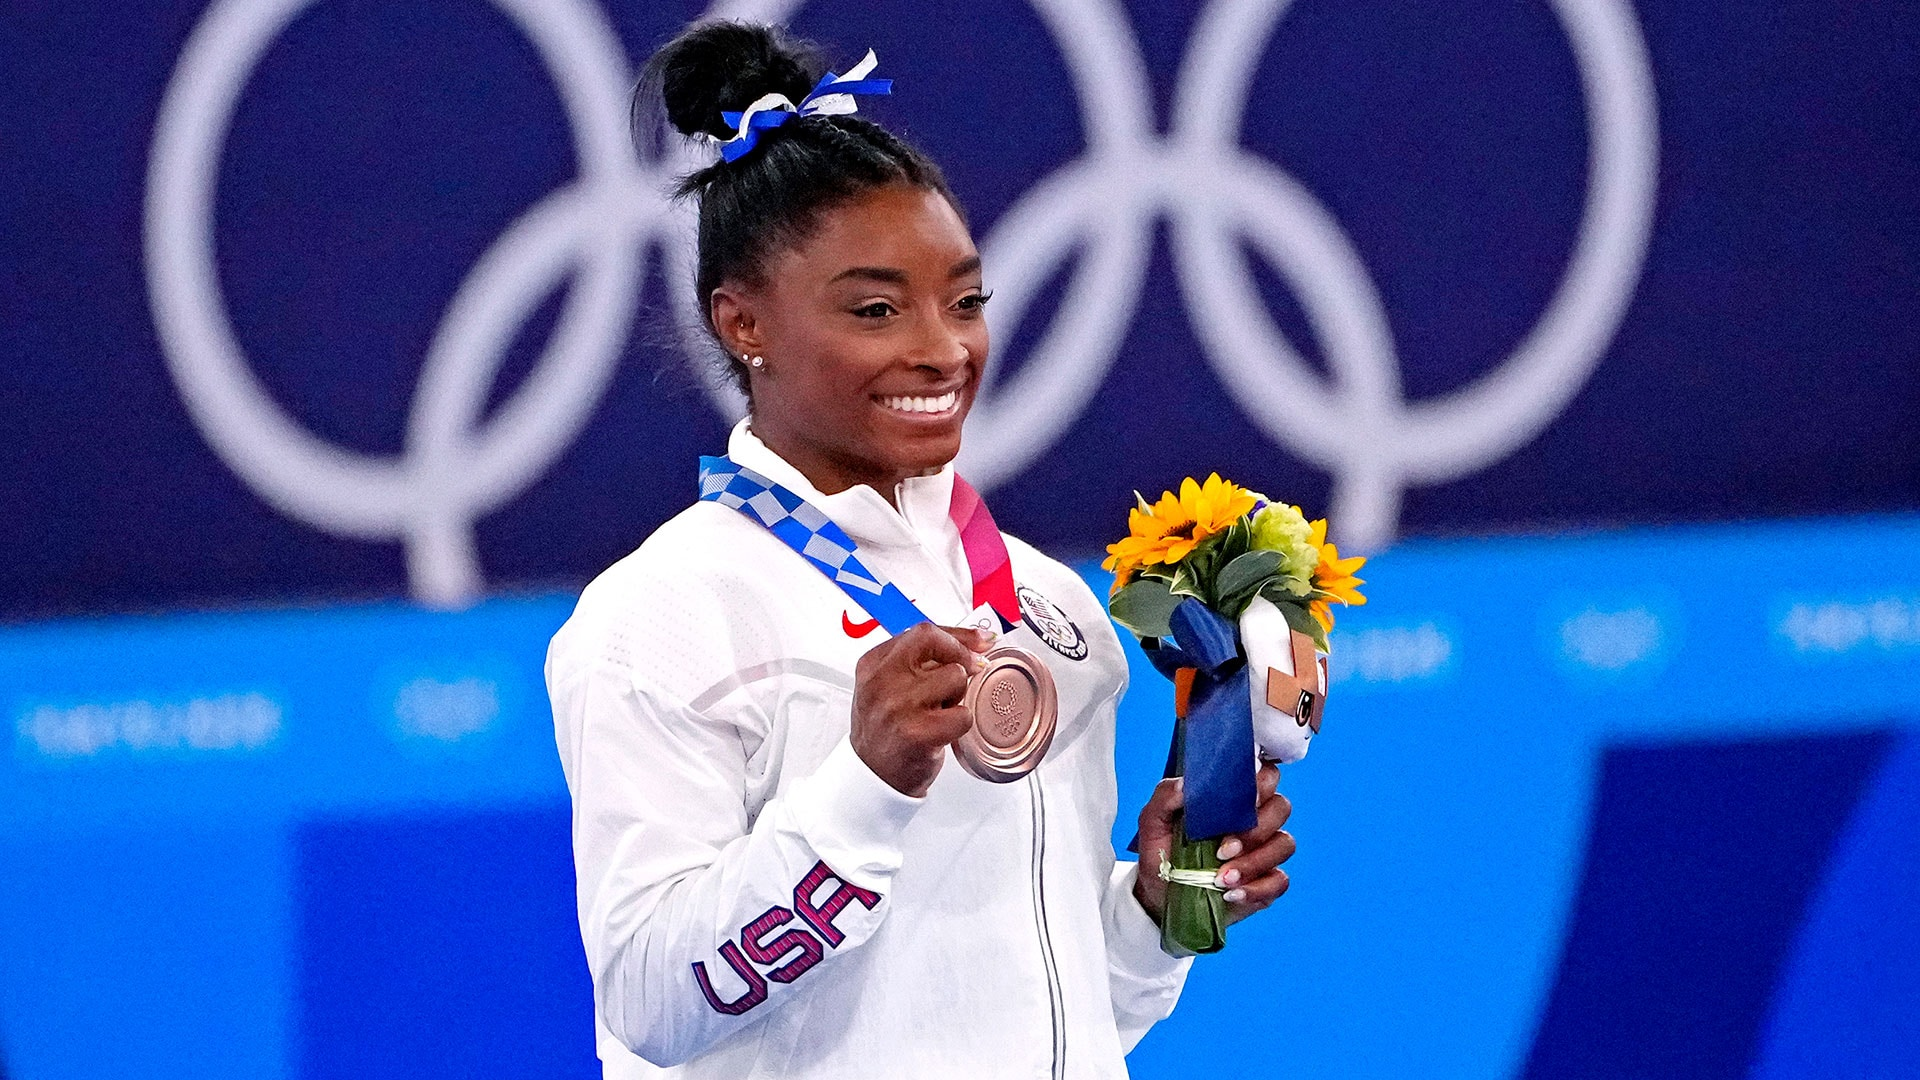 Simone Biles opened up about her experience at the Tokyo Olympics after winning bronze on...